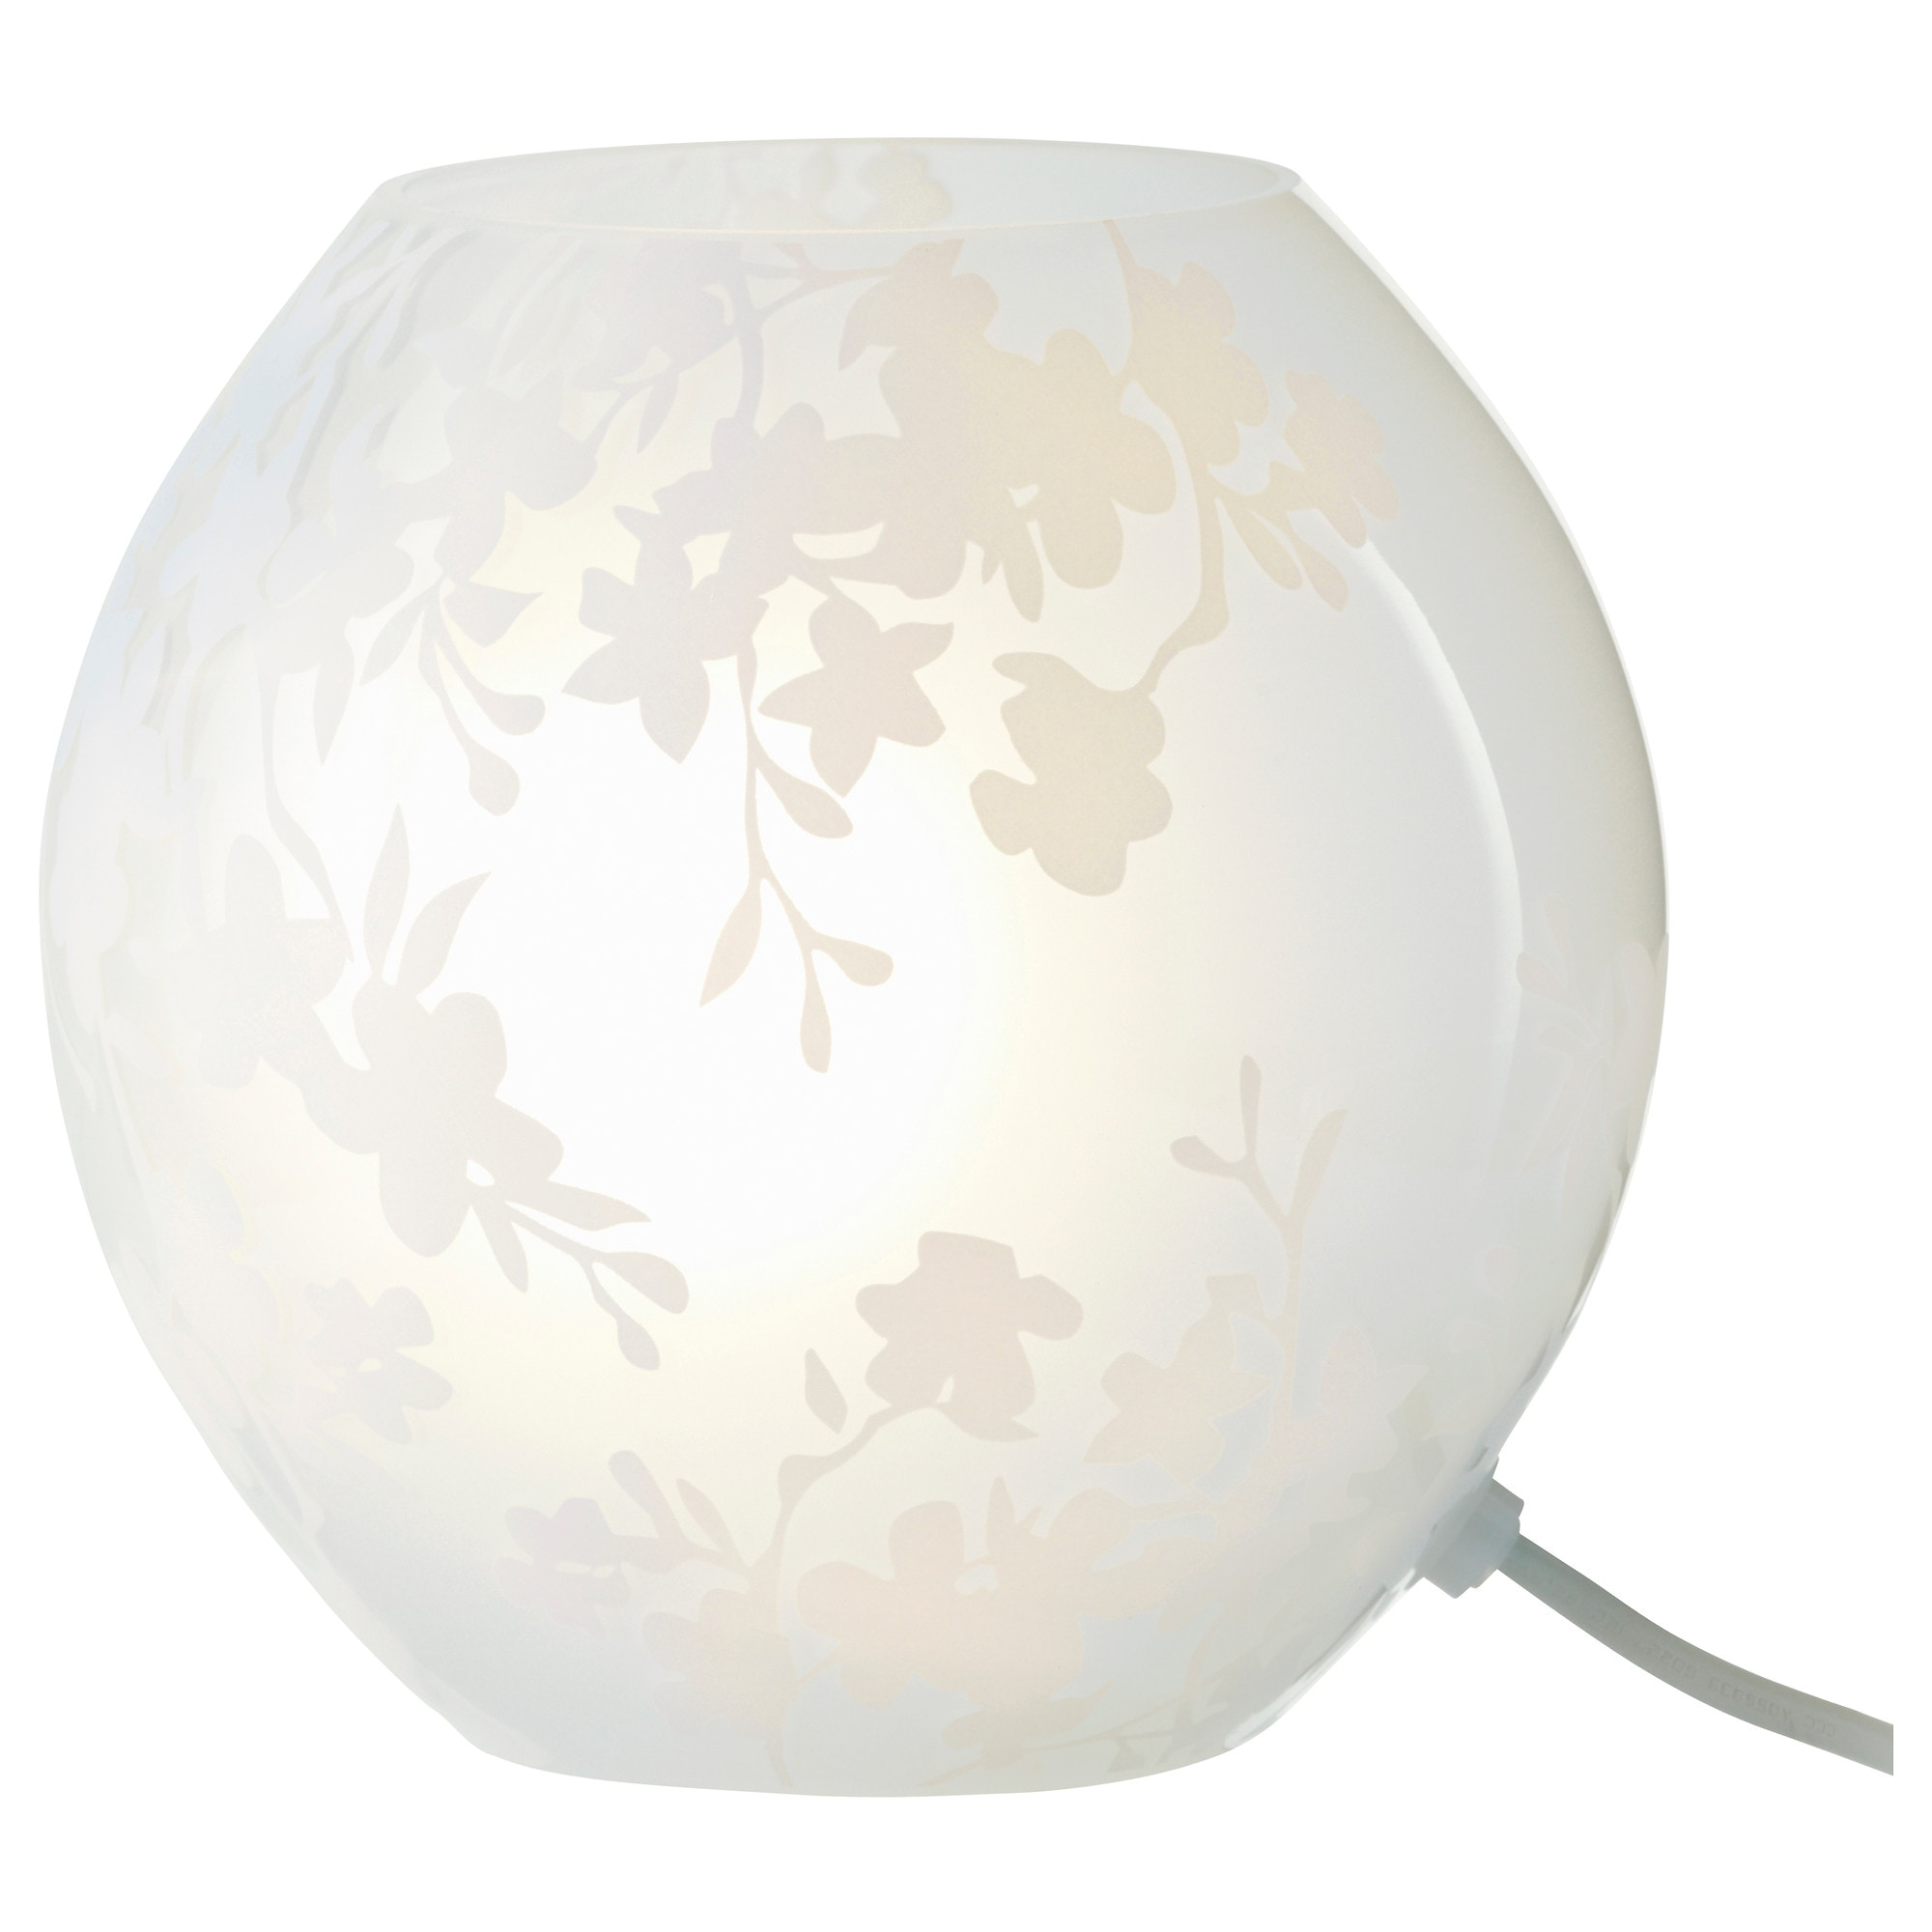 Table Lamp Ikea: KNUBBIG table lamp with LED bulb, cherry-blossoms white Height: 7